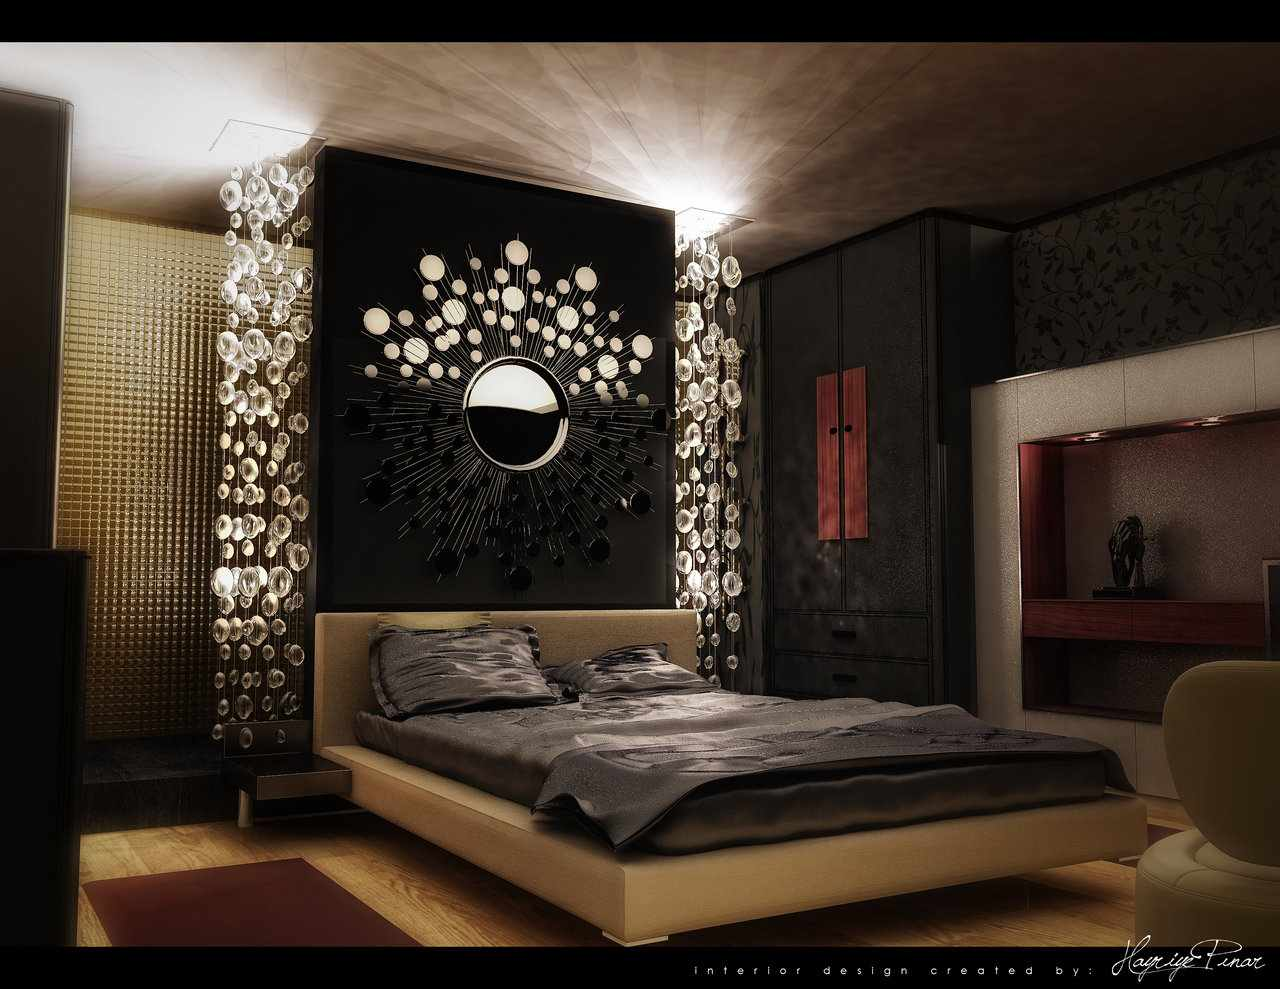 Ikea bedroom ideas ikea bedroom 2014 ideas room design for Bedroom decor design ideas